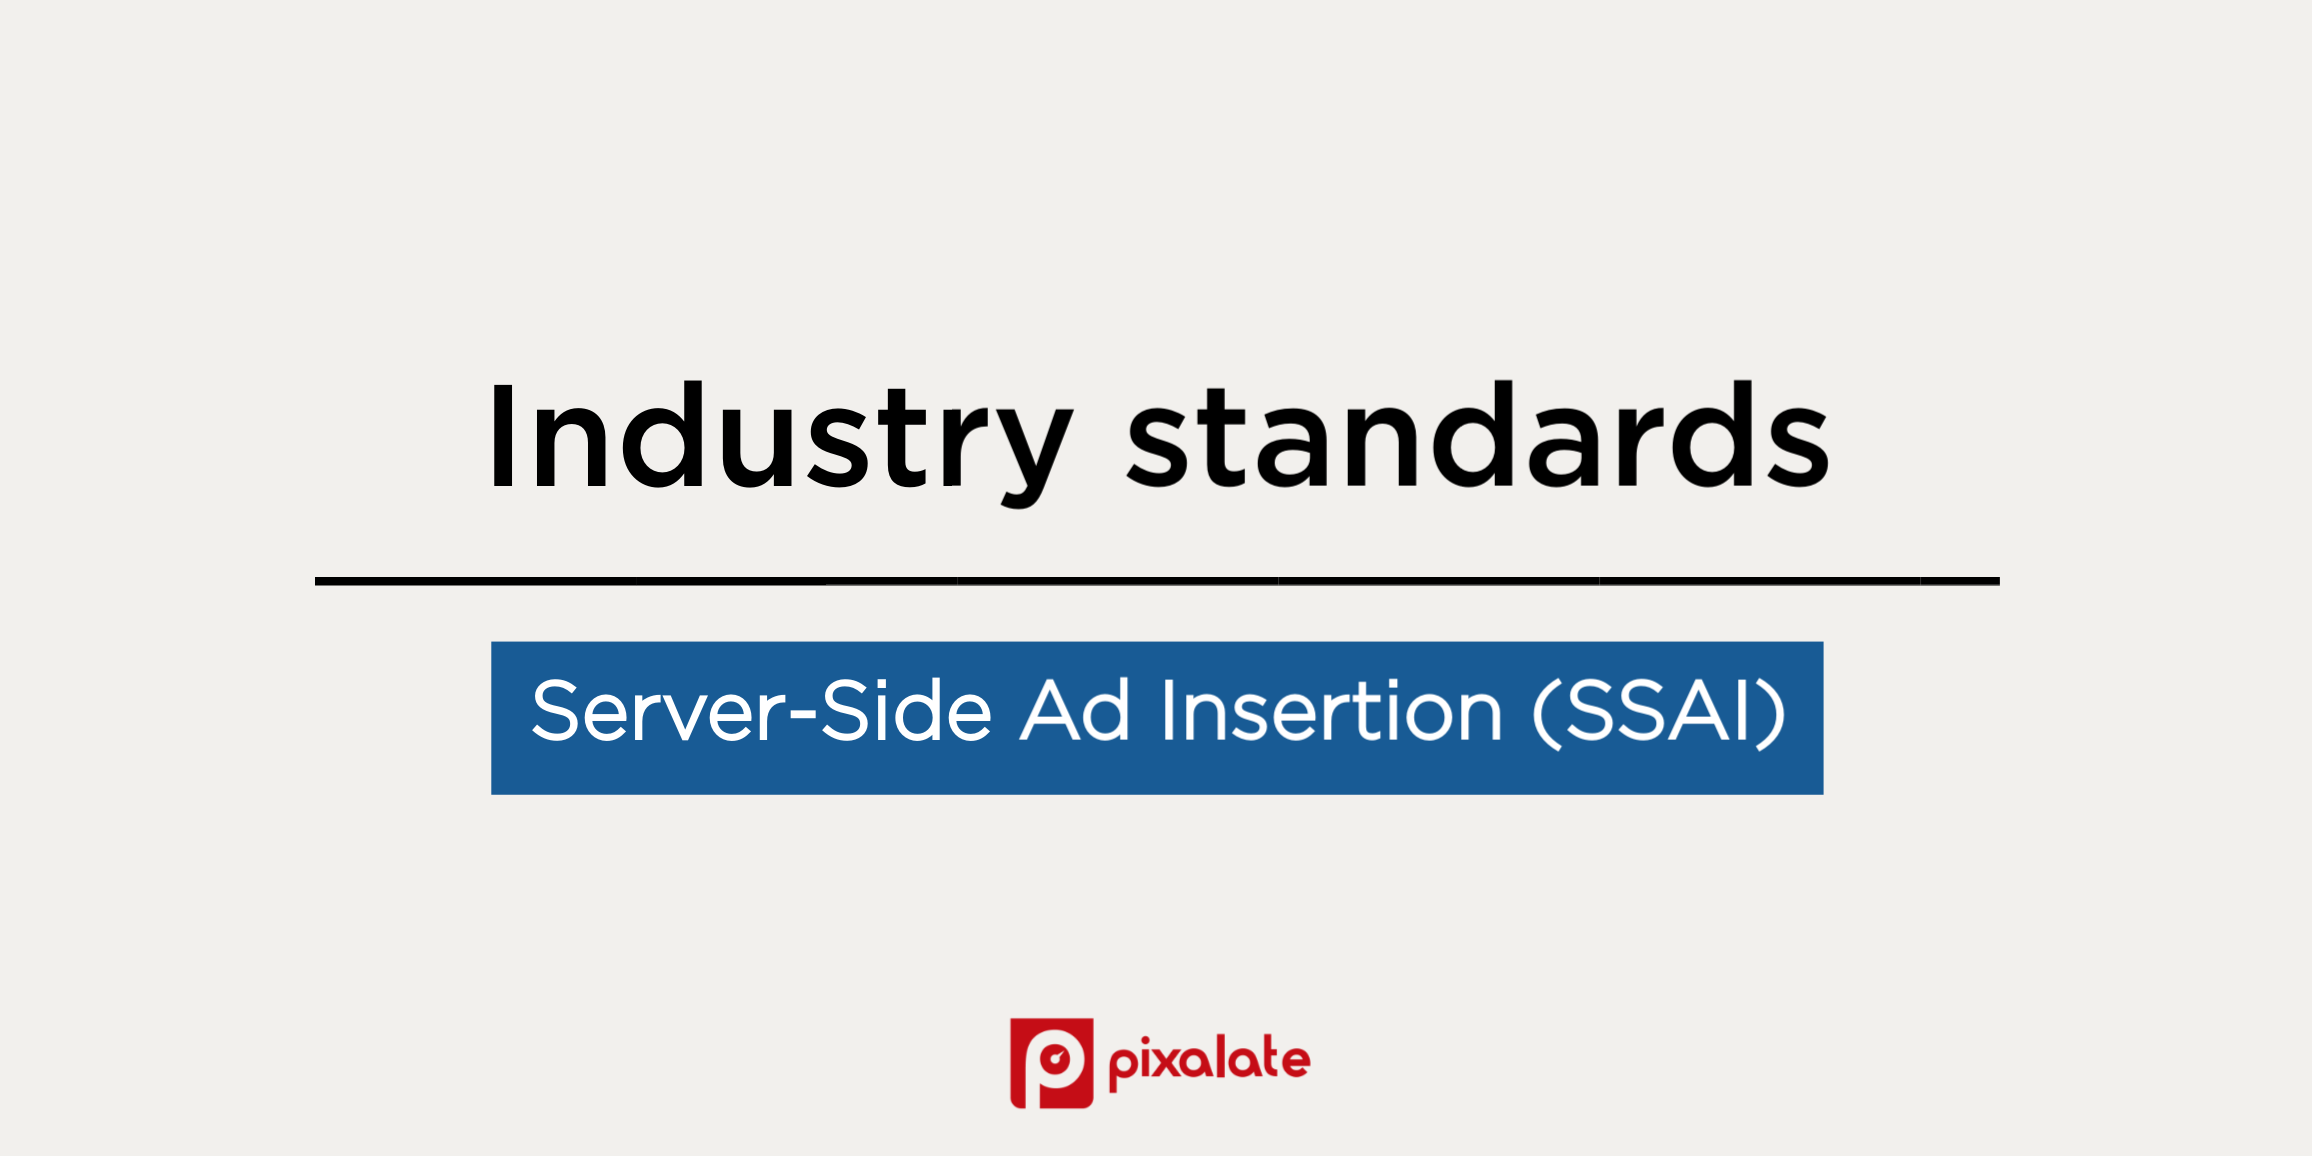 What Are Industry Standards For Server Side Ad Insertion